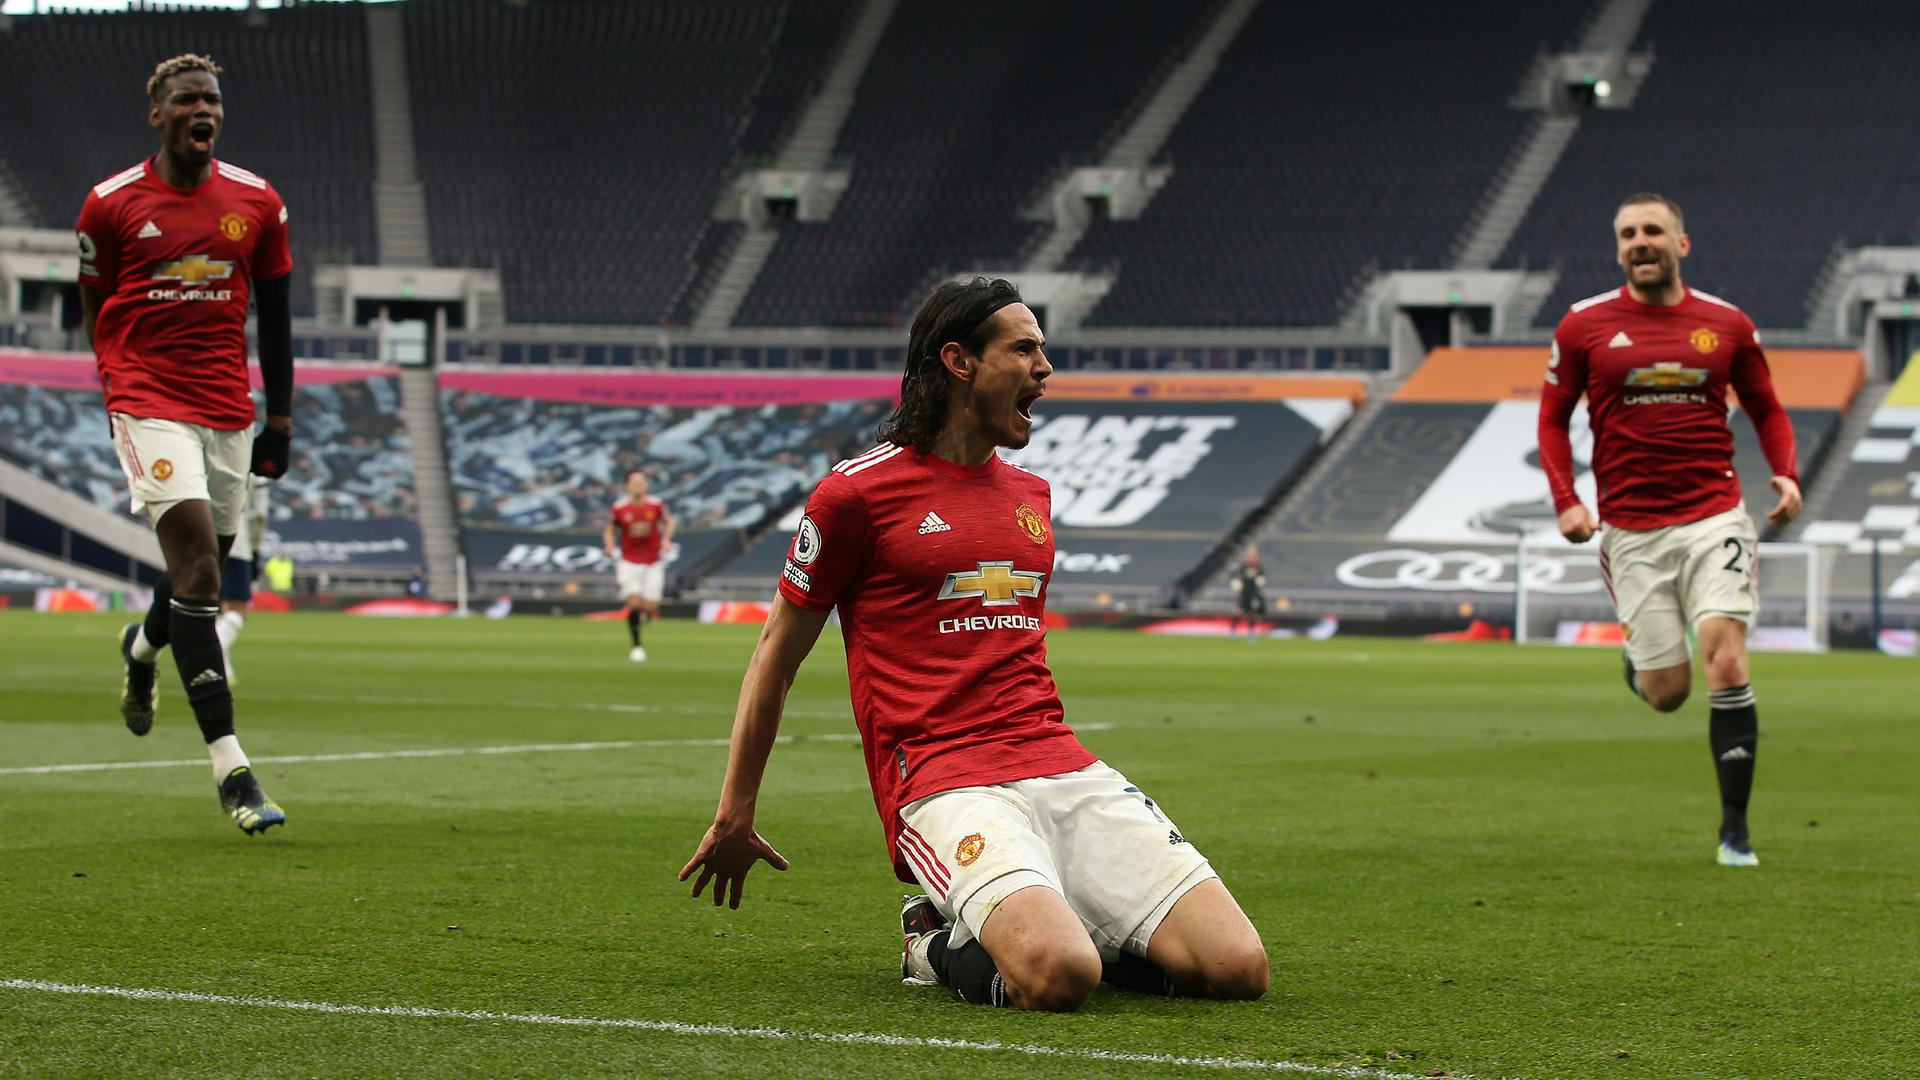 Man United will look to finish off Granada in the UEFA Europa League